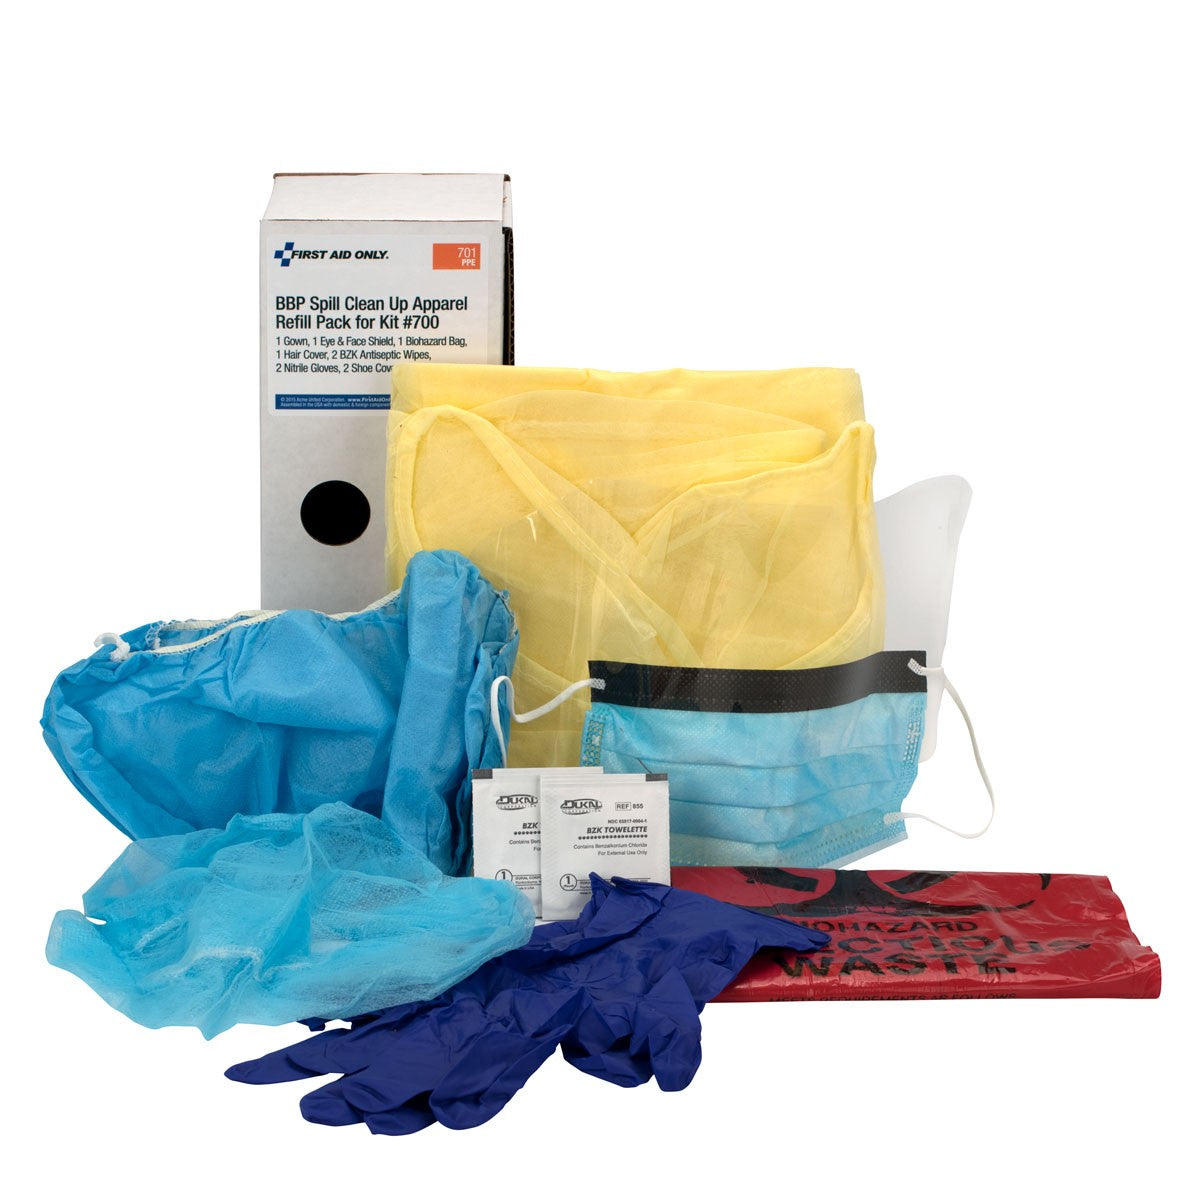 Bloodborne Pathogen (BBP) Spill Clean-Up Apparel Refill Pack For Kit #700 - BS-FAK-701-1-FM